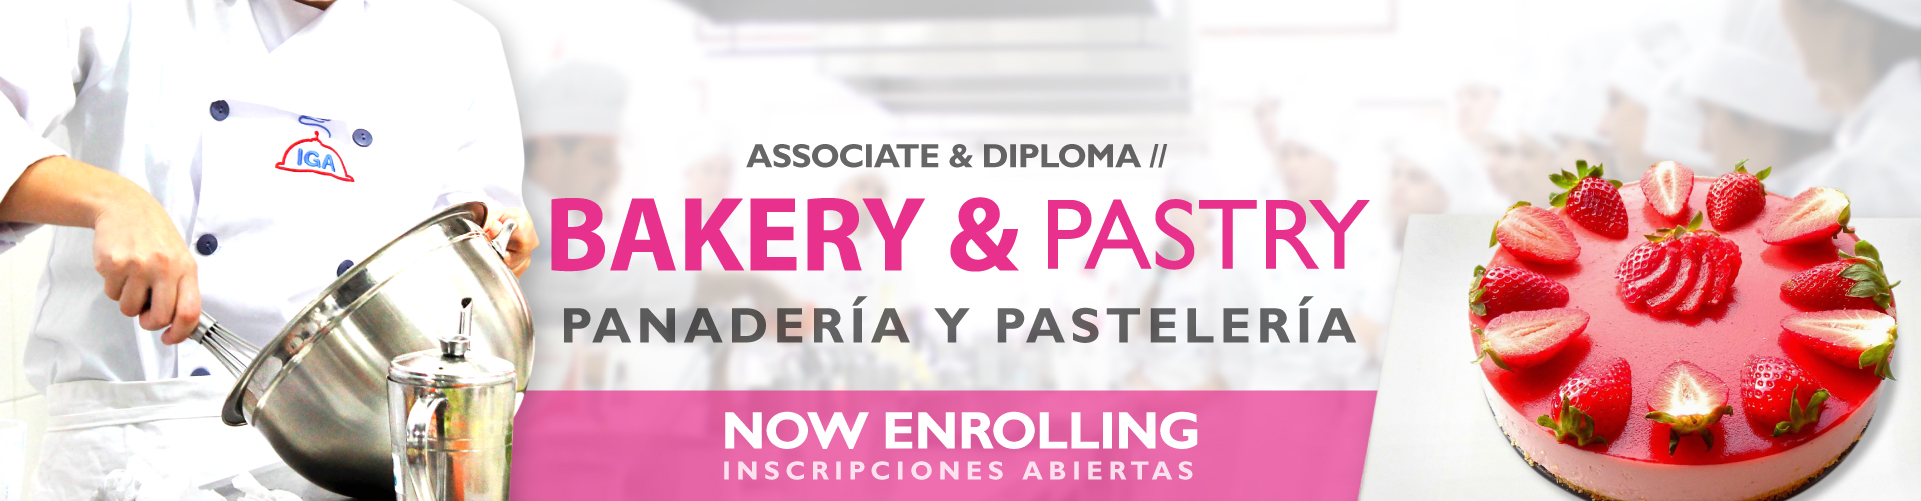 Associate &diploma bakery and pastry